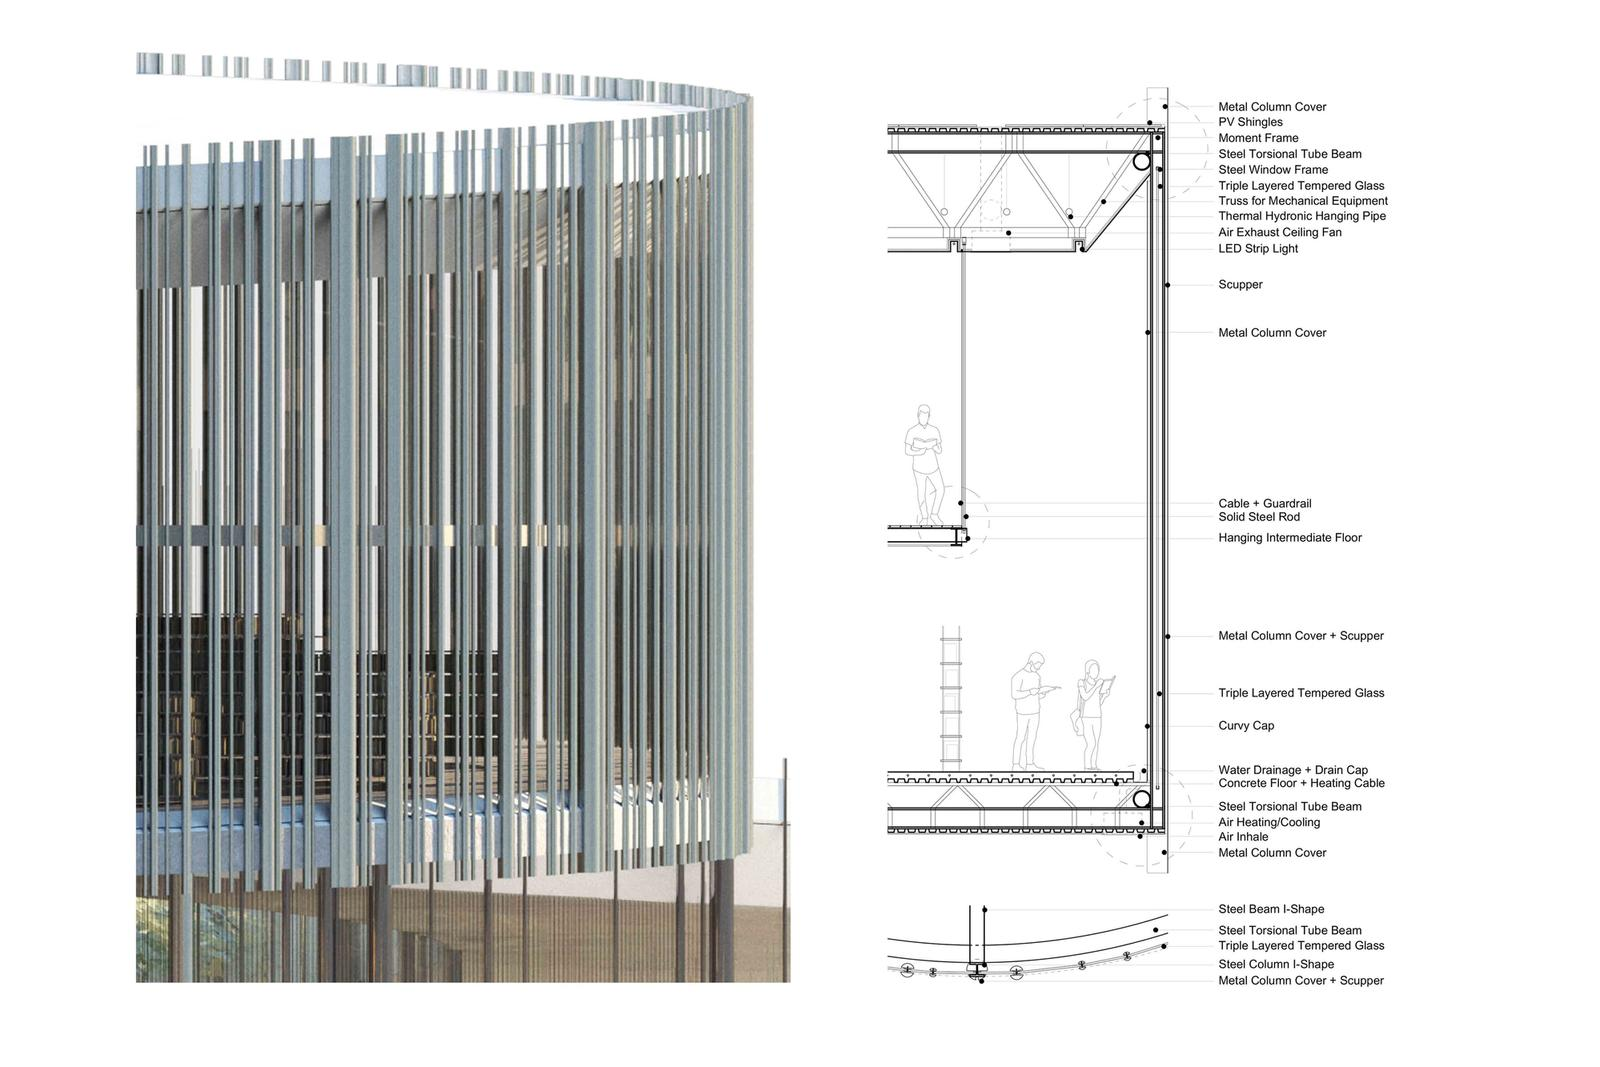 Outer Mission Ramp Library - Wall Section / Enlarged Elevation